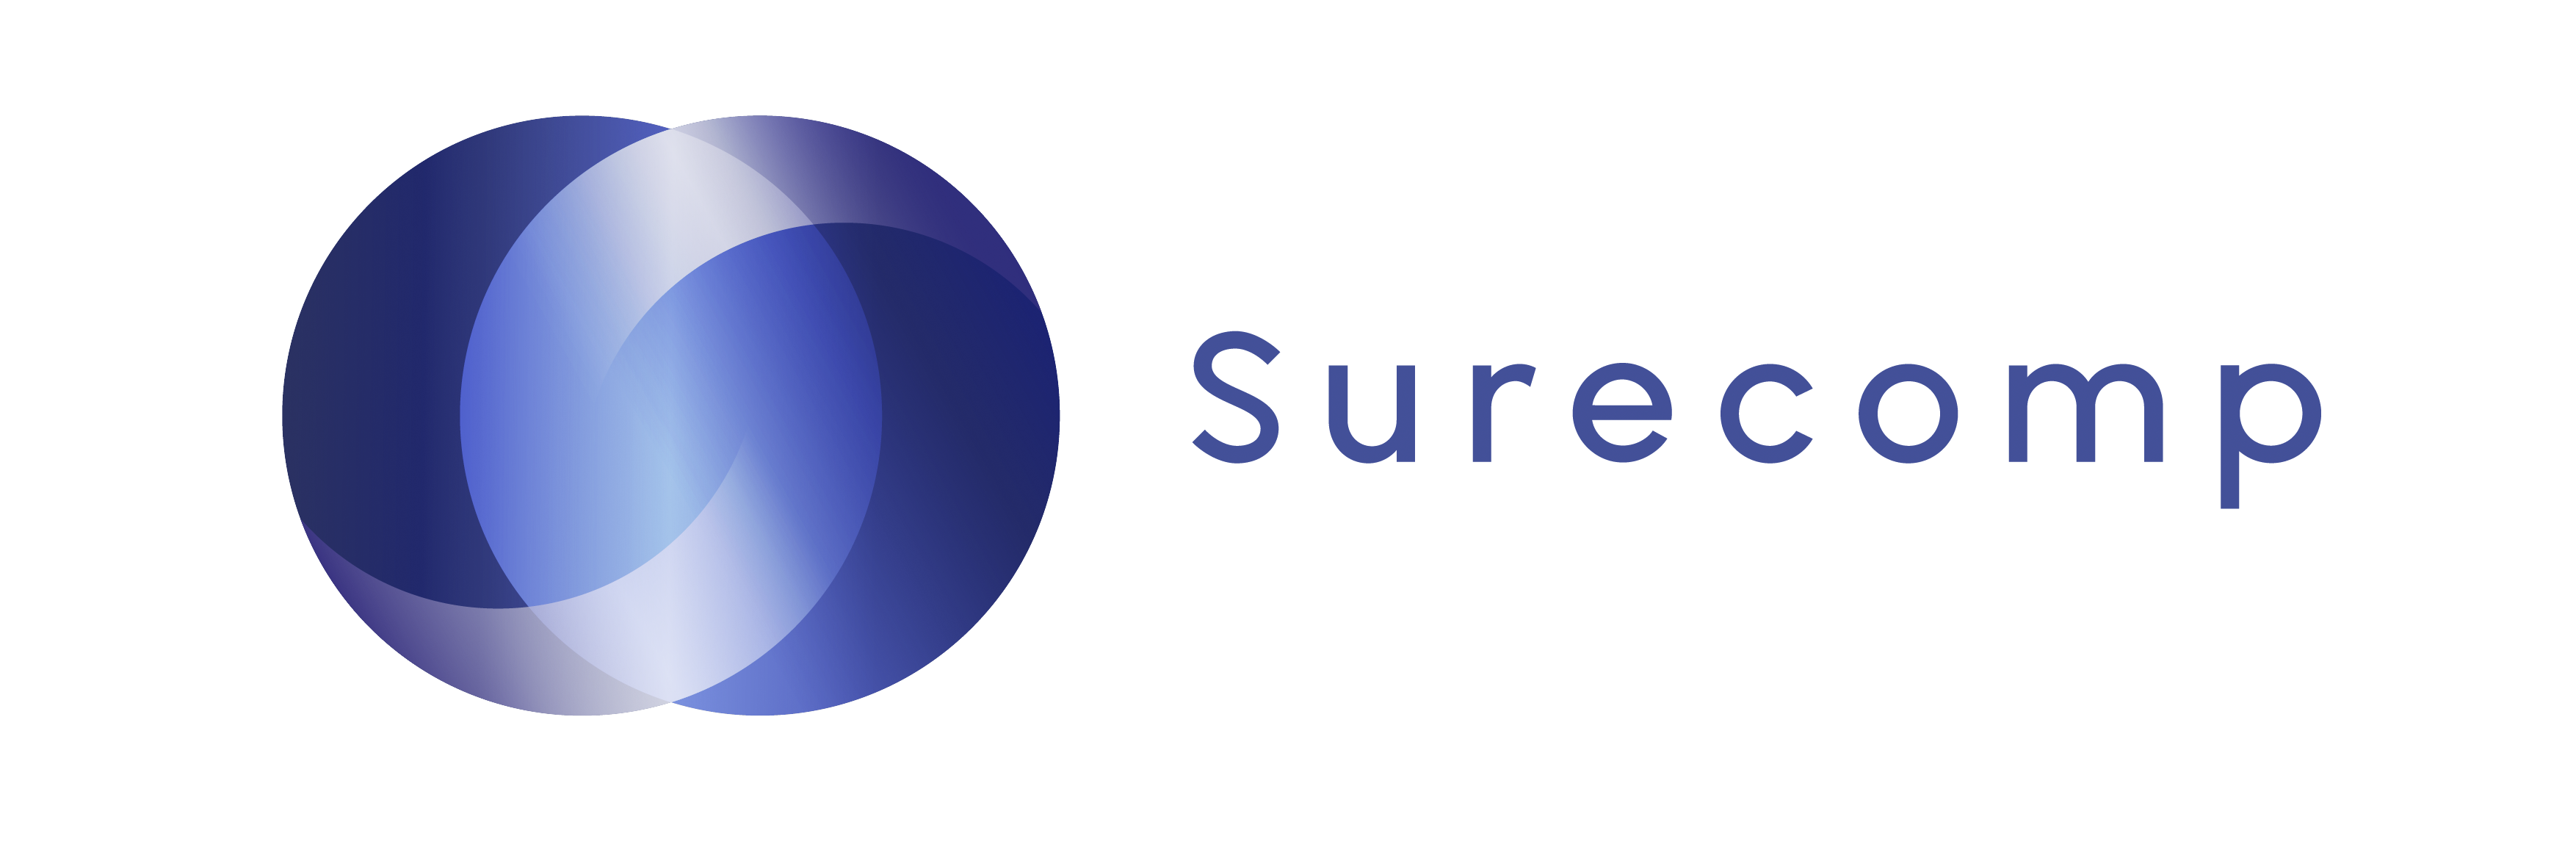 Surecomp's DOKA 5 Trade Finance System Implemented by Isbank Germany